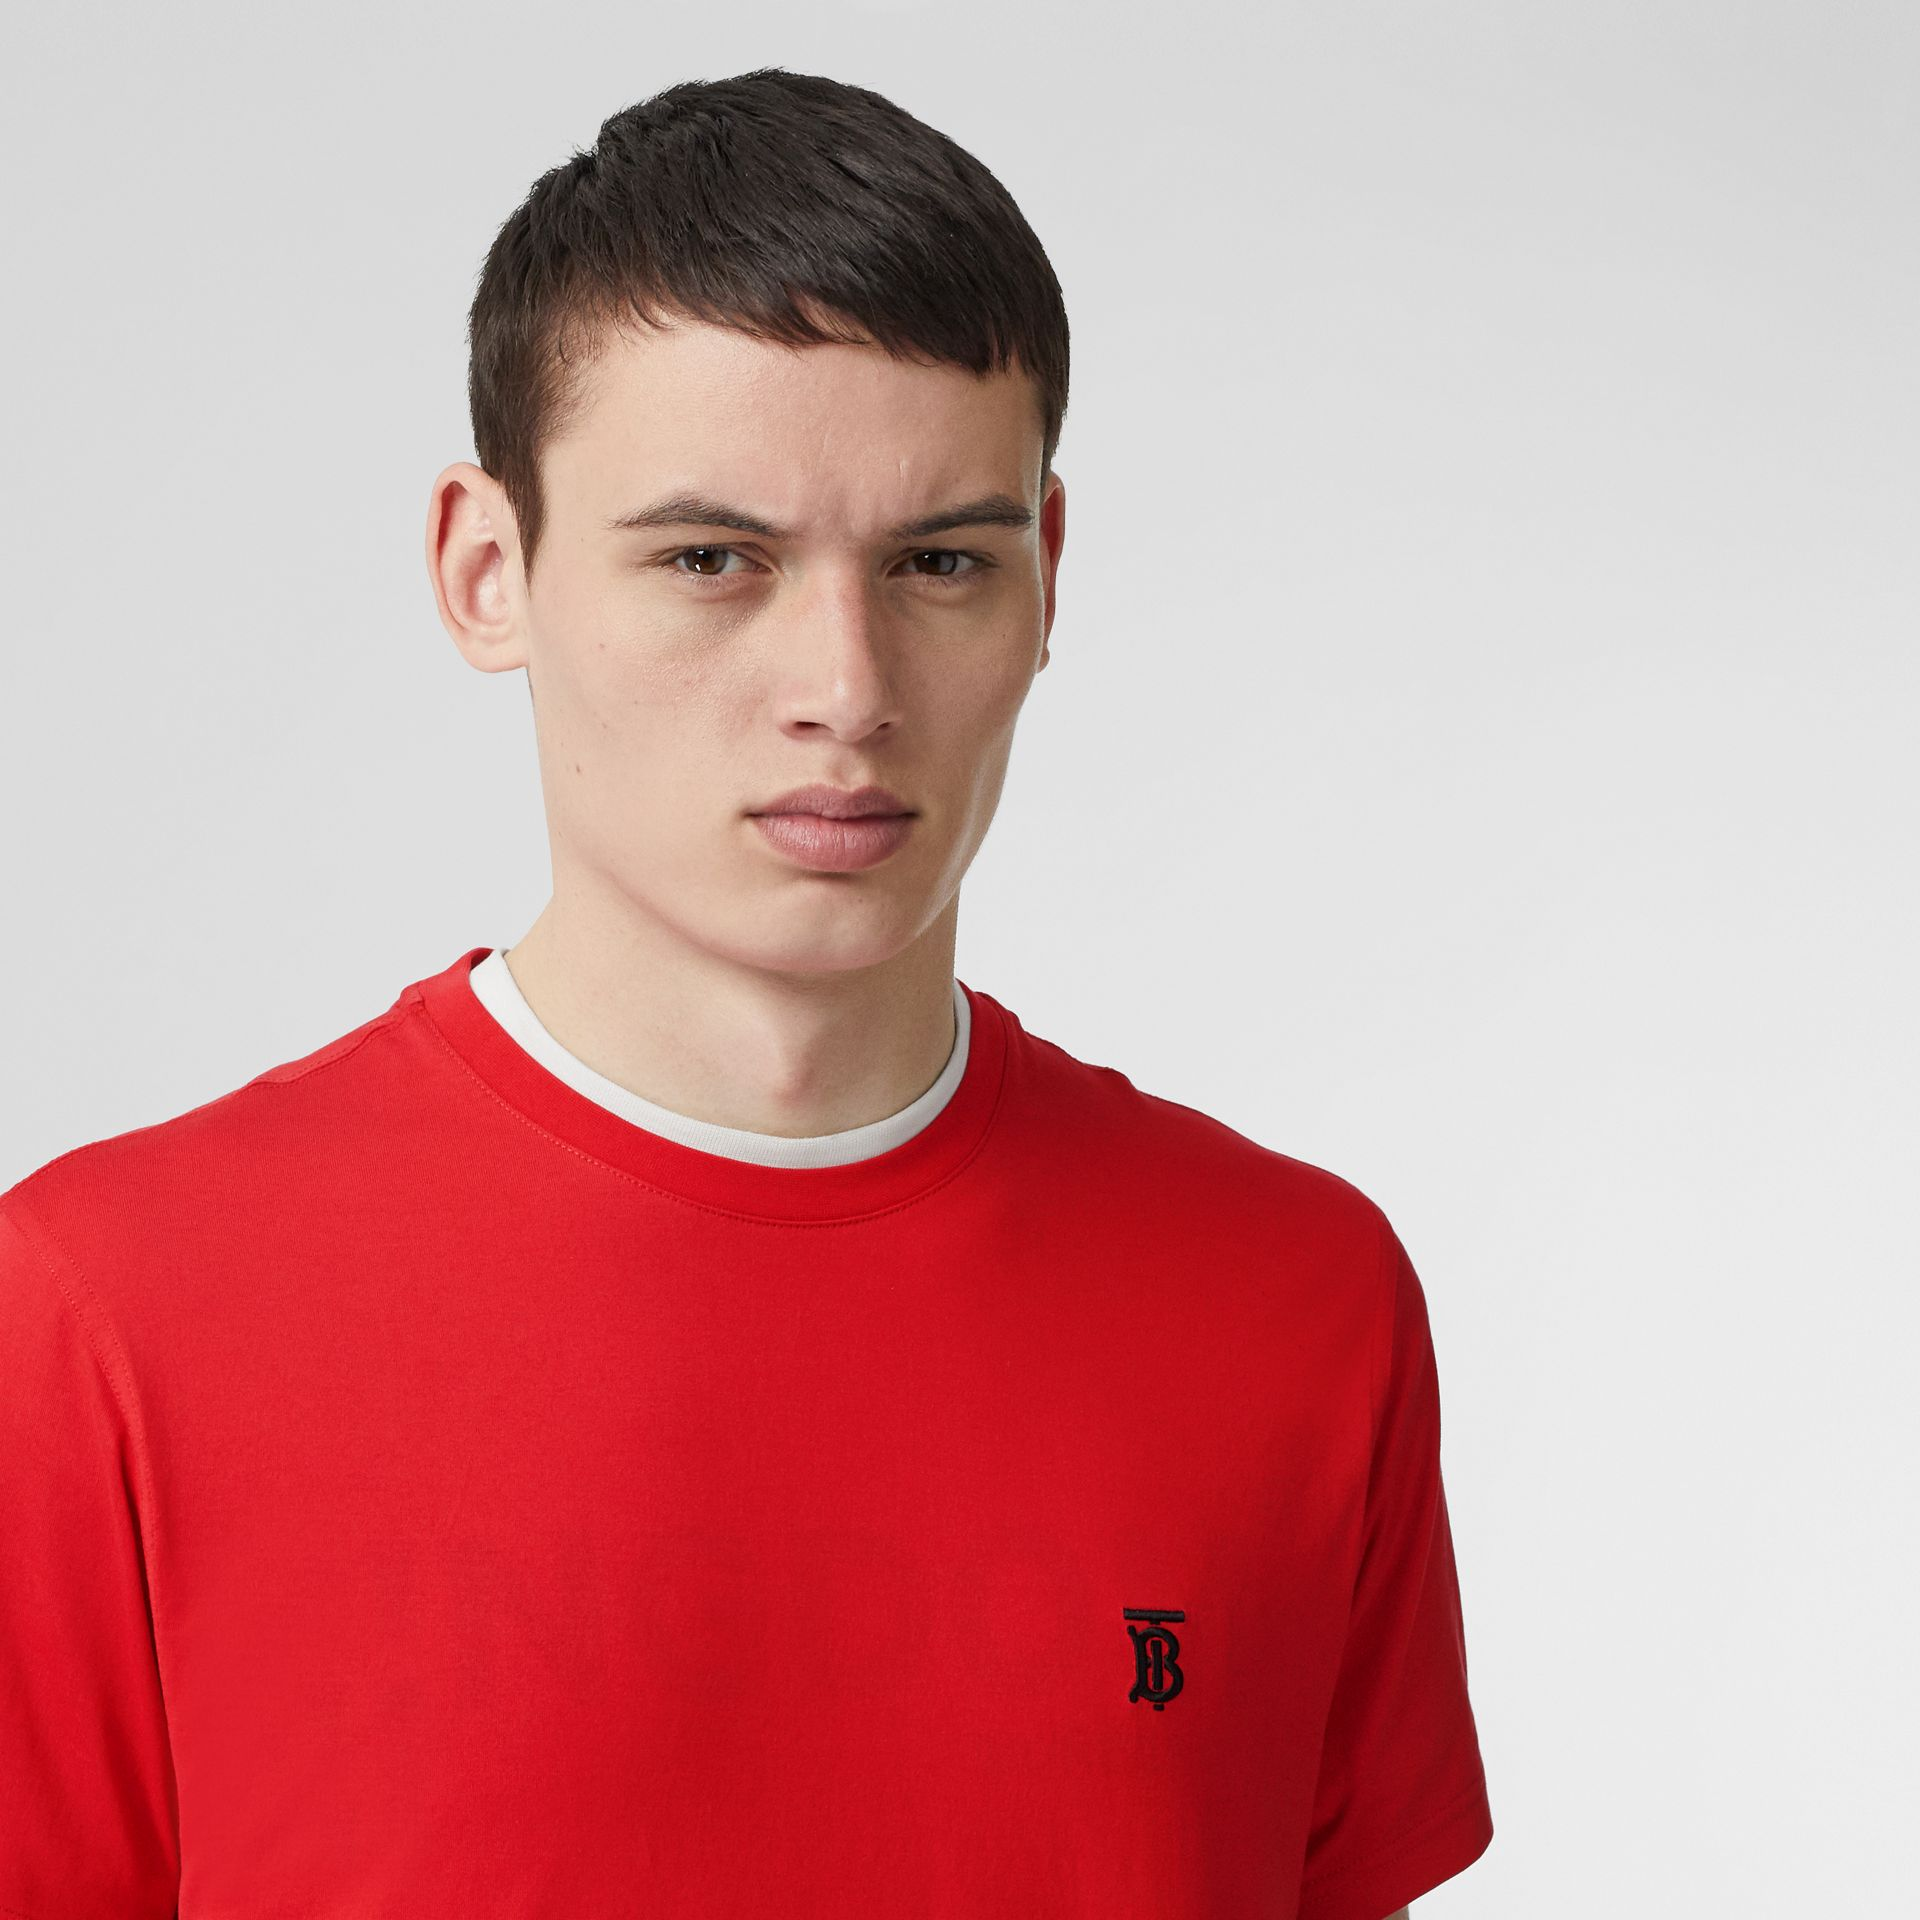 Monogram Motif Cotton T-shirt in Bright Red - Men | Burberry - gallery image 1